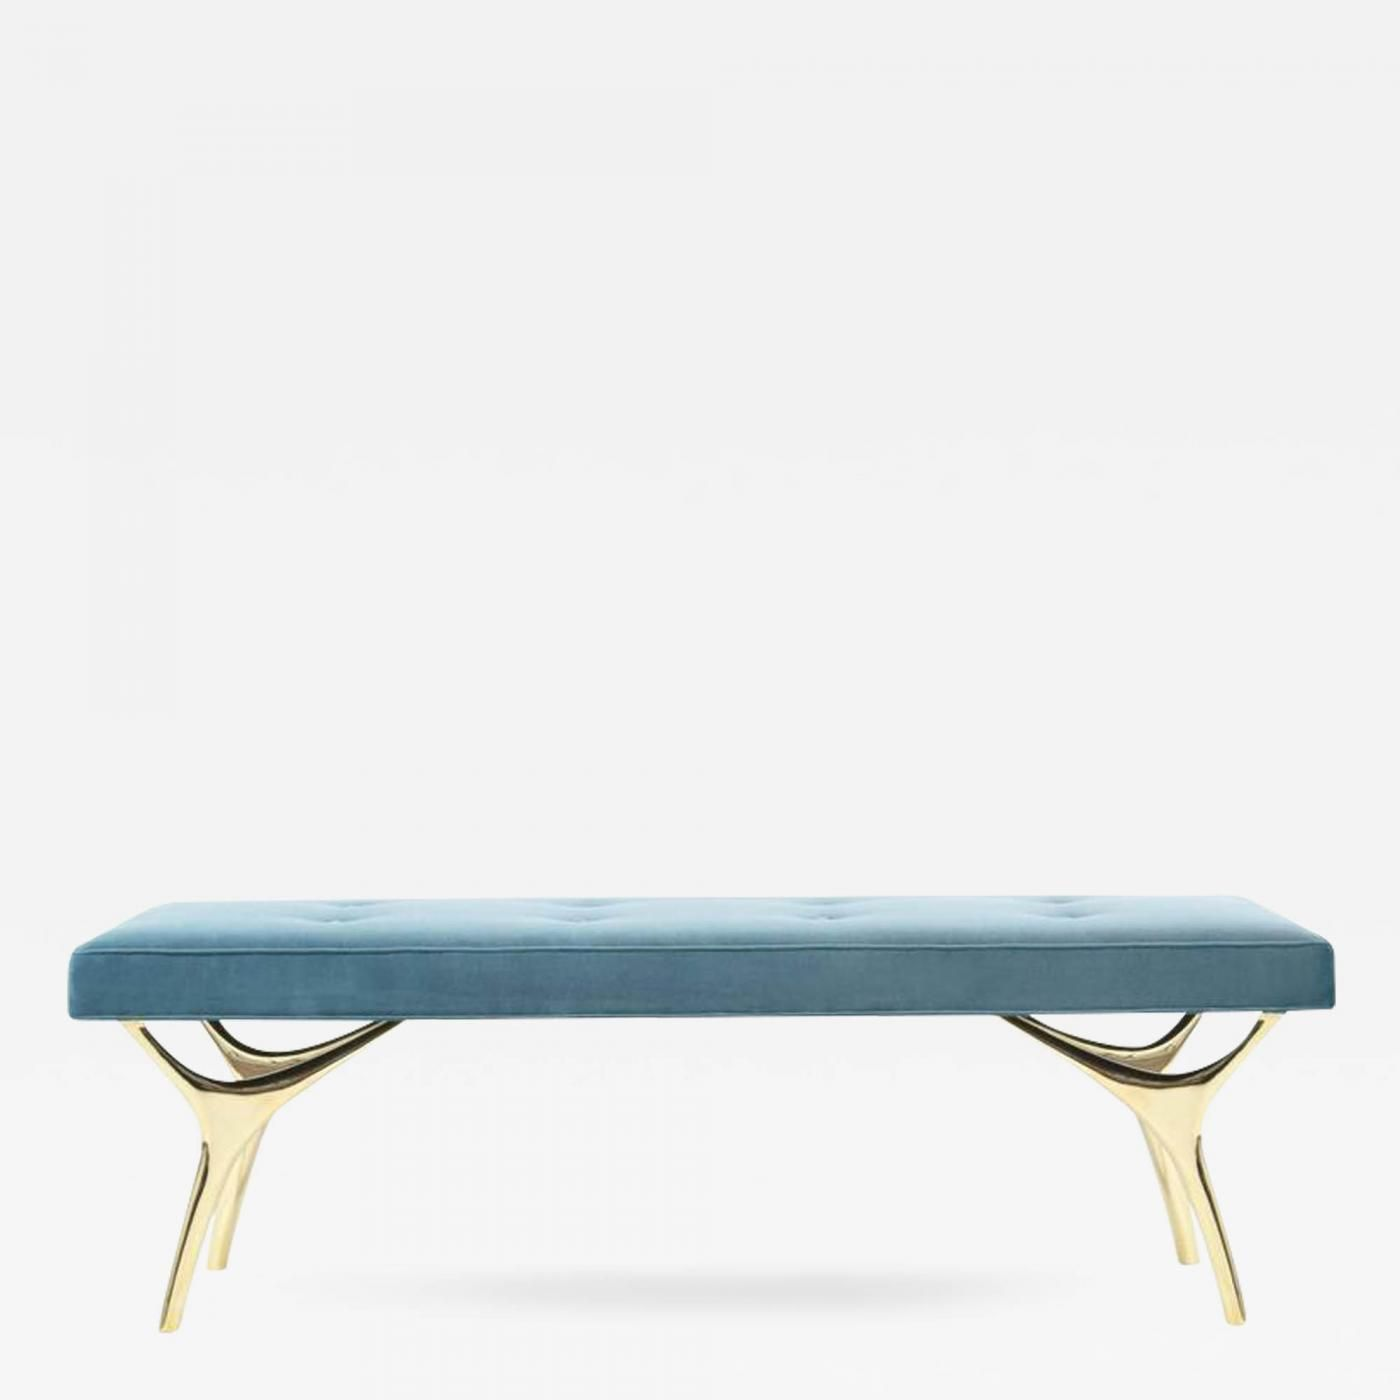 Carlos Solano Granda Crescent Bench In Brass Offered By Stamford Modern On Incollect Modern Seating Mid Modern Bench